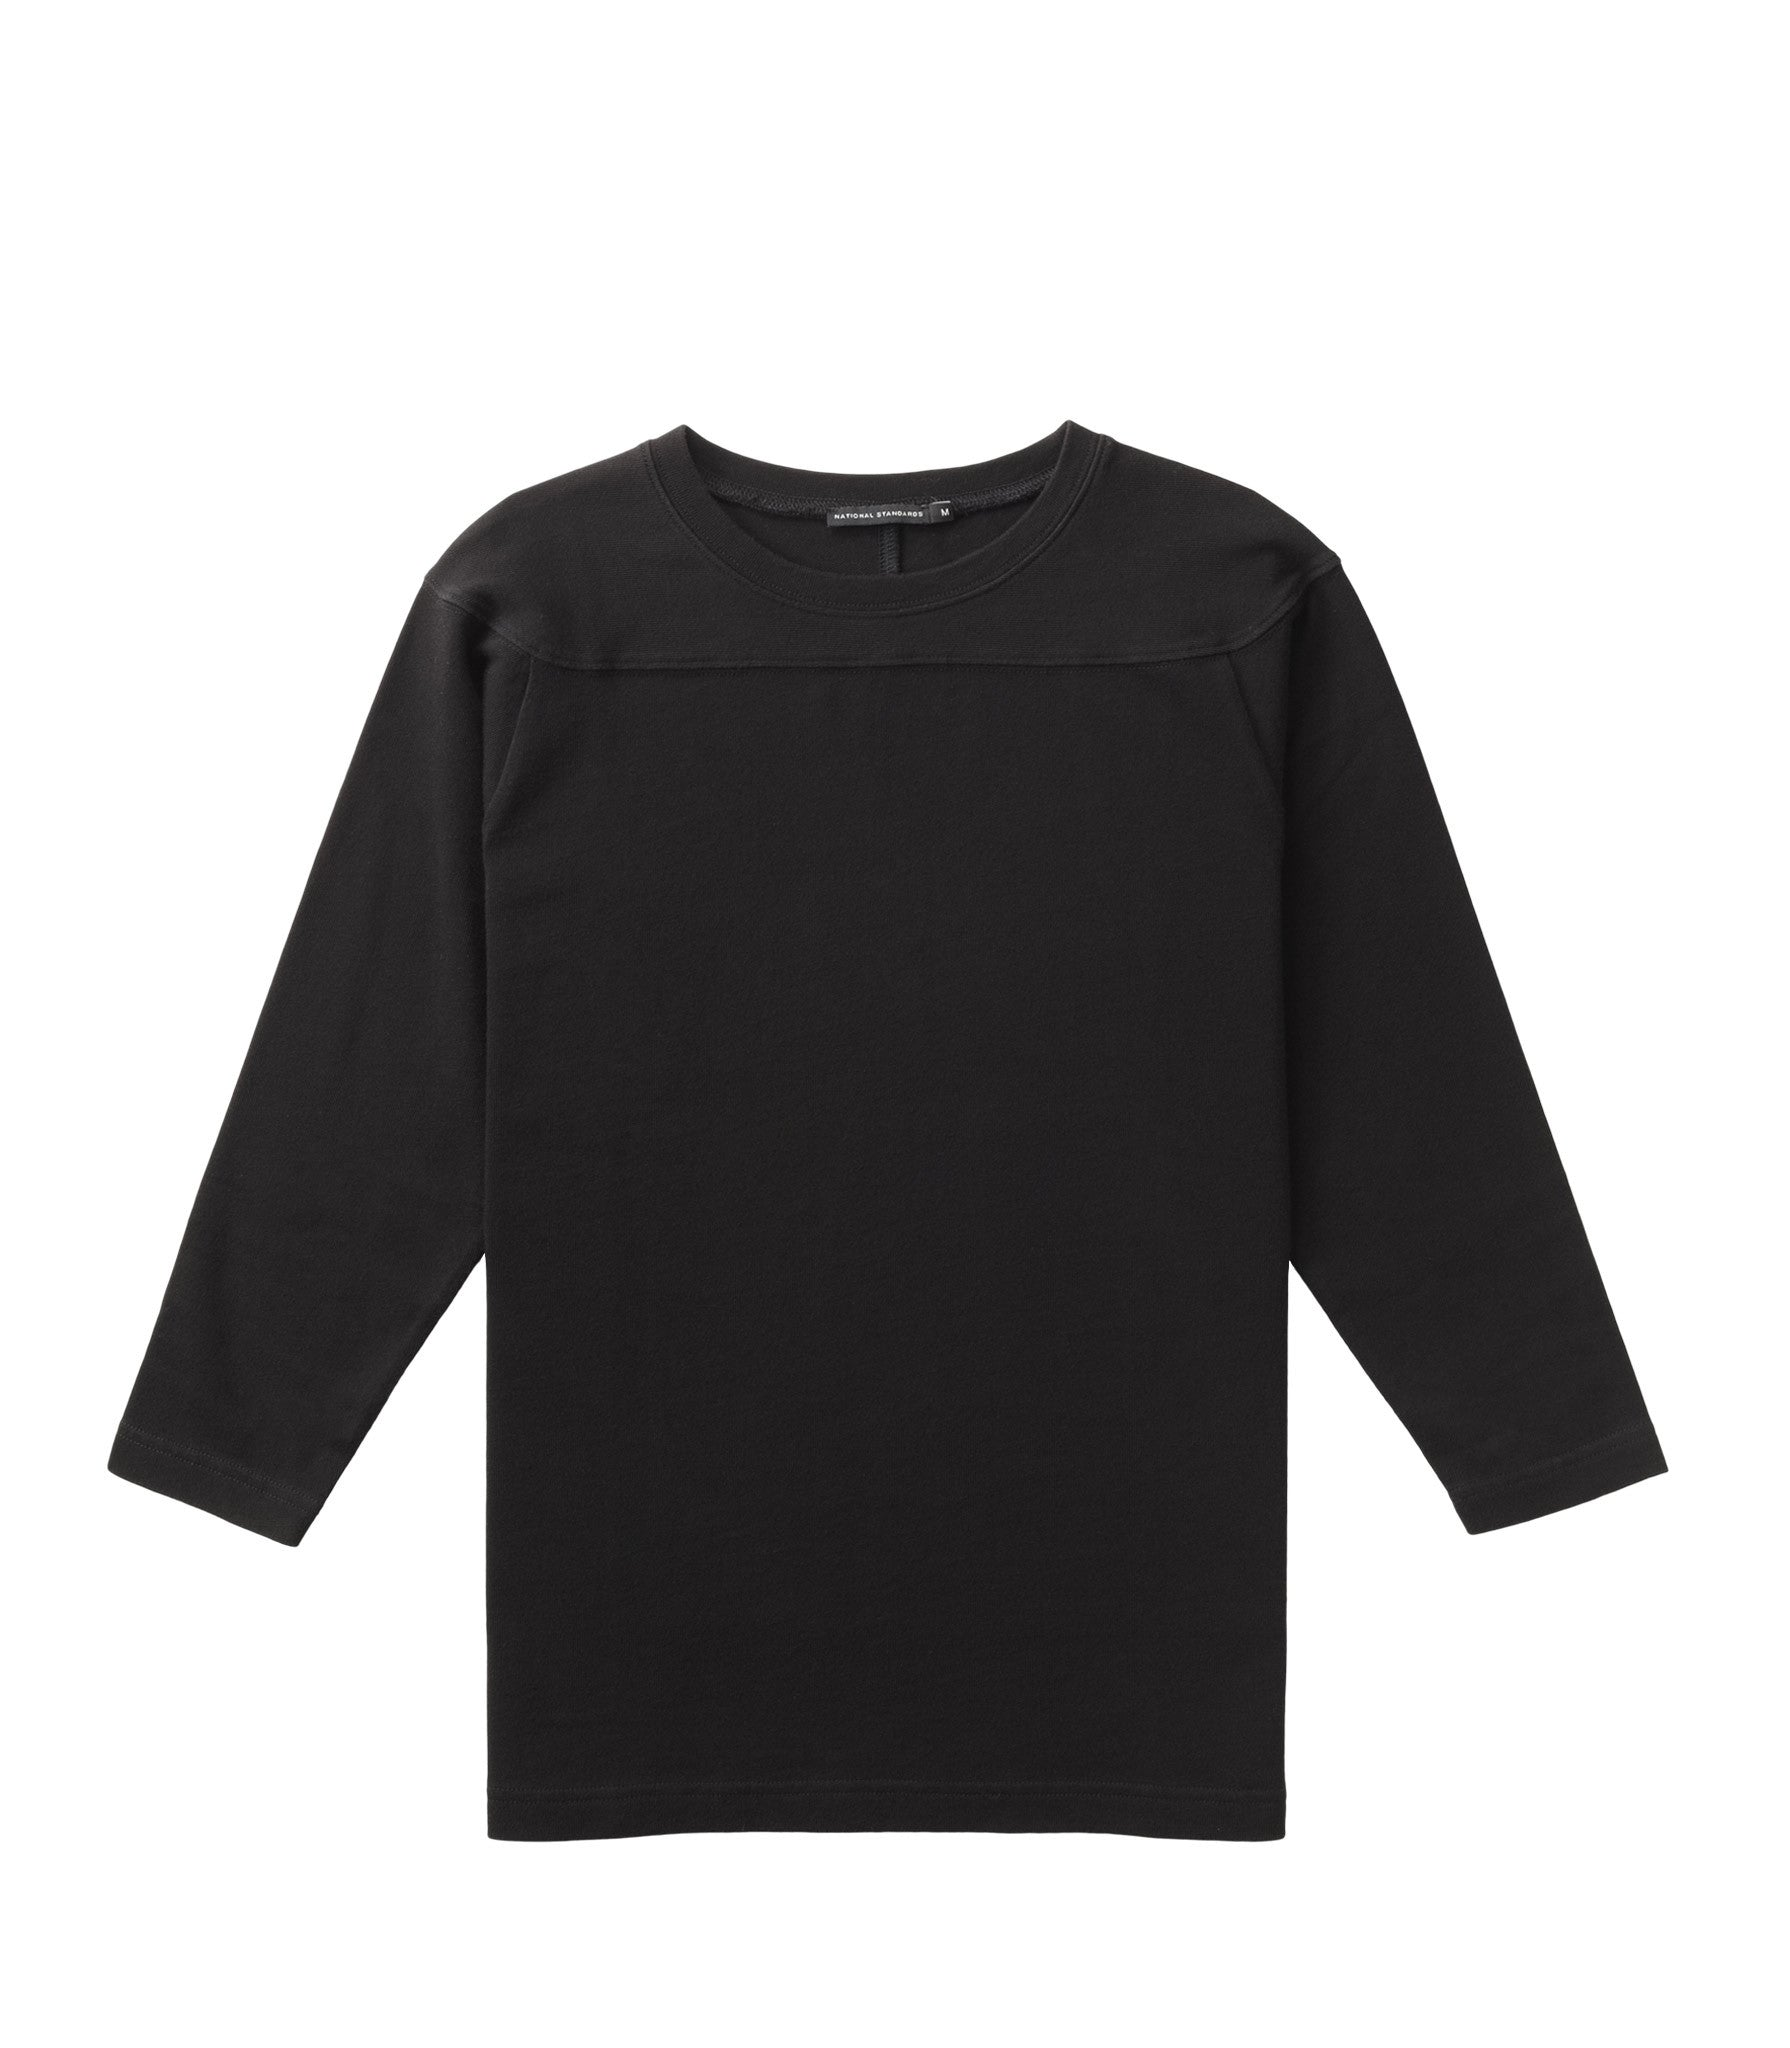 Supreme cotton game jersey in Black